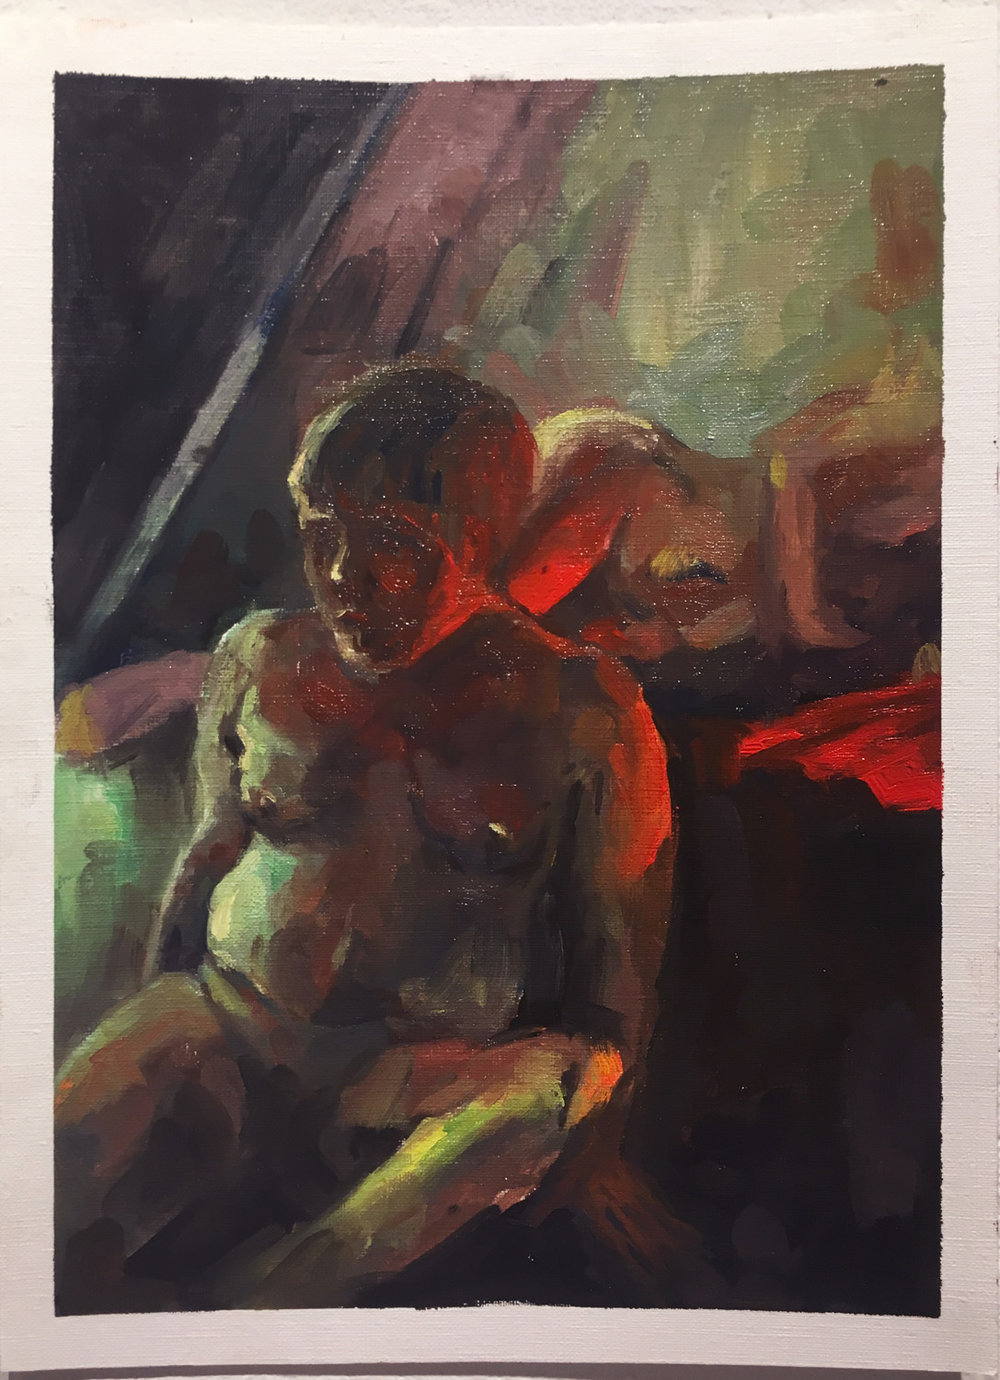 "09. Week 5 in-class assignment on lighting. by Angle L. 4 hours. Oil paint on canvas paper. 2018. 9"" x 12""  Painting Marathon, RISD. Paint the model setup with colored gels on lights."